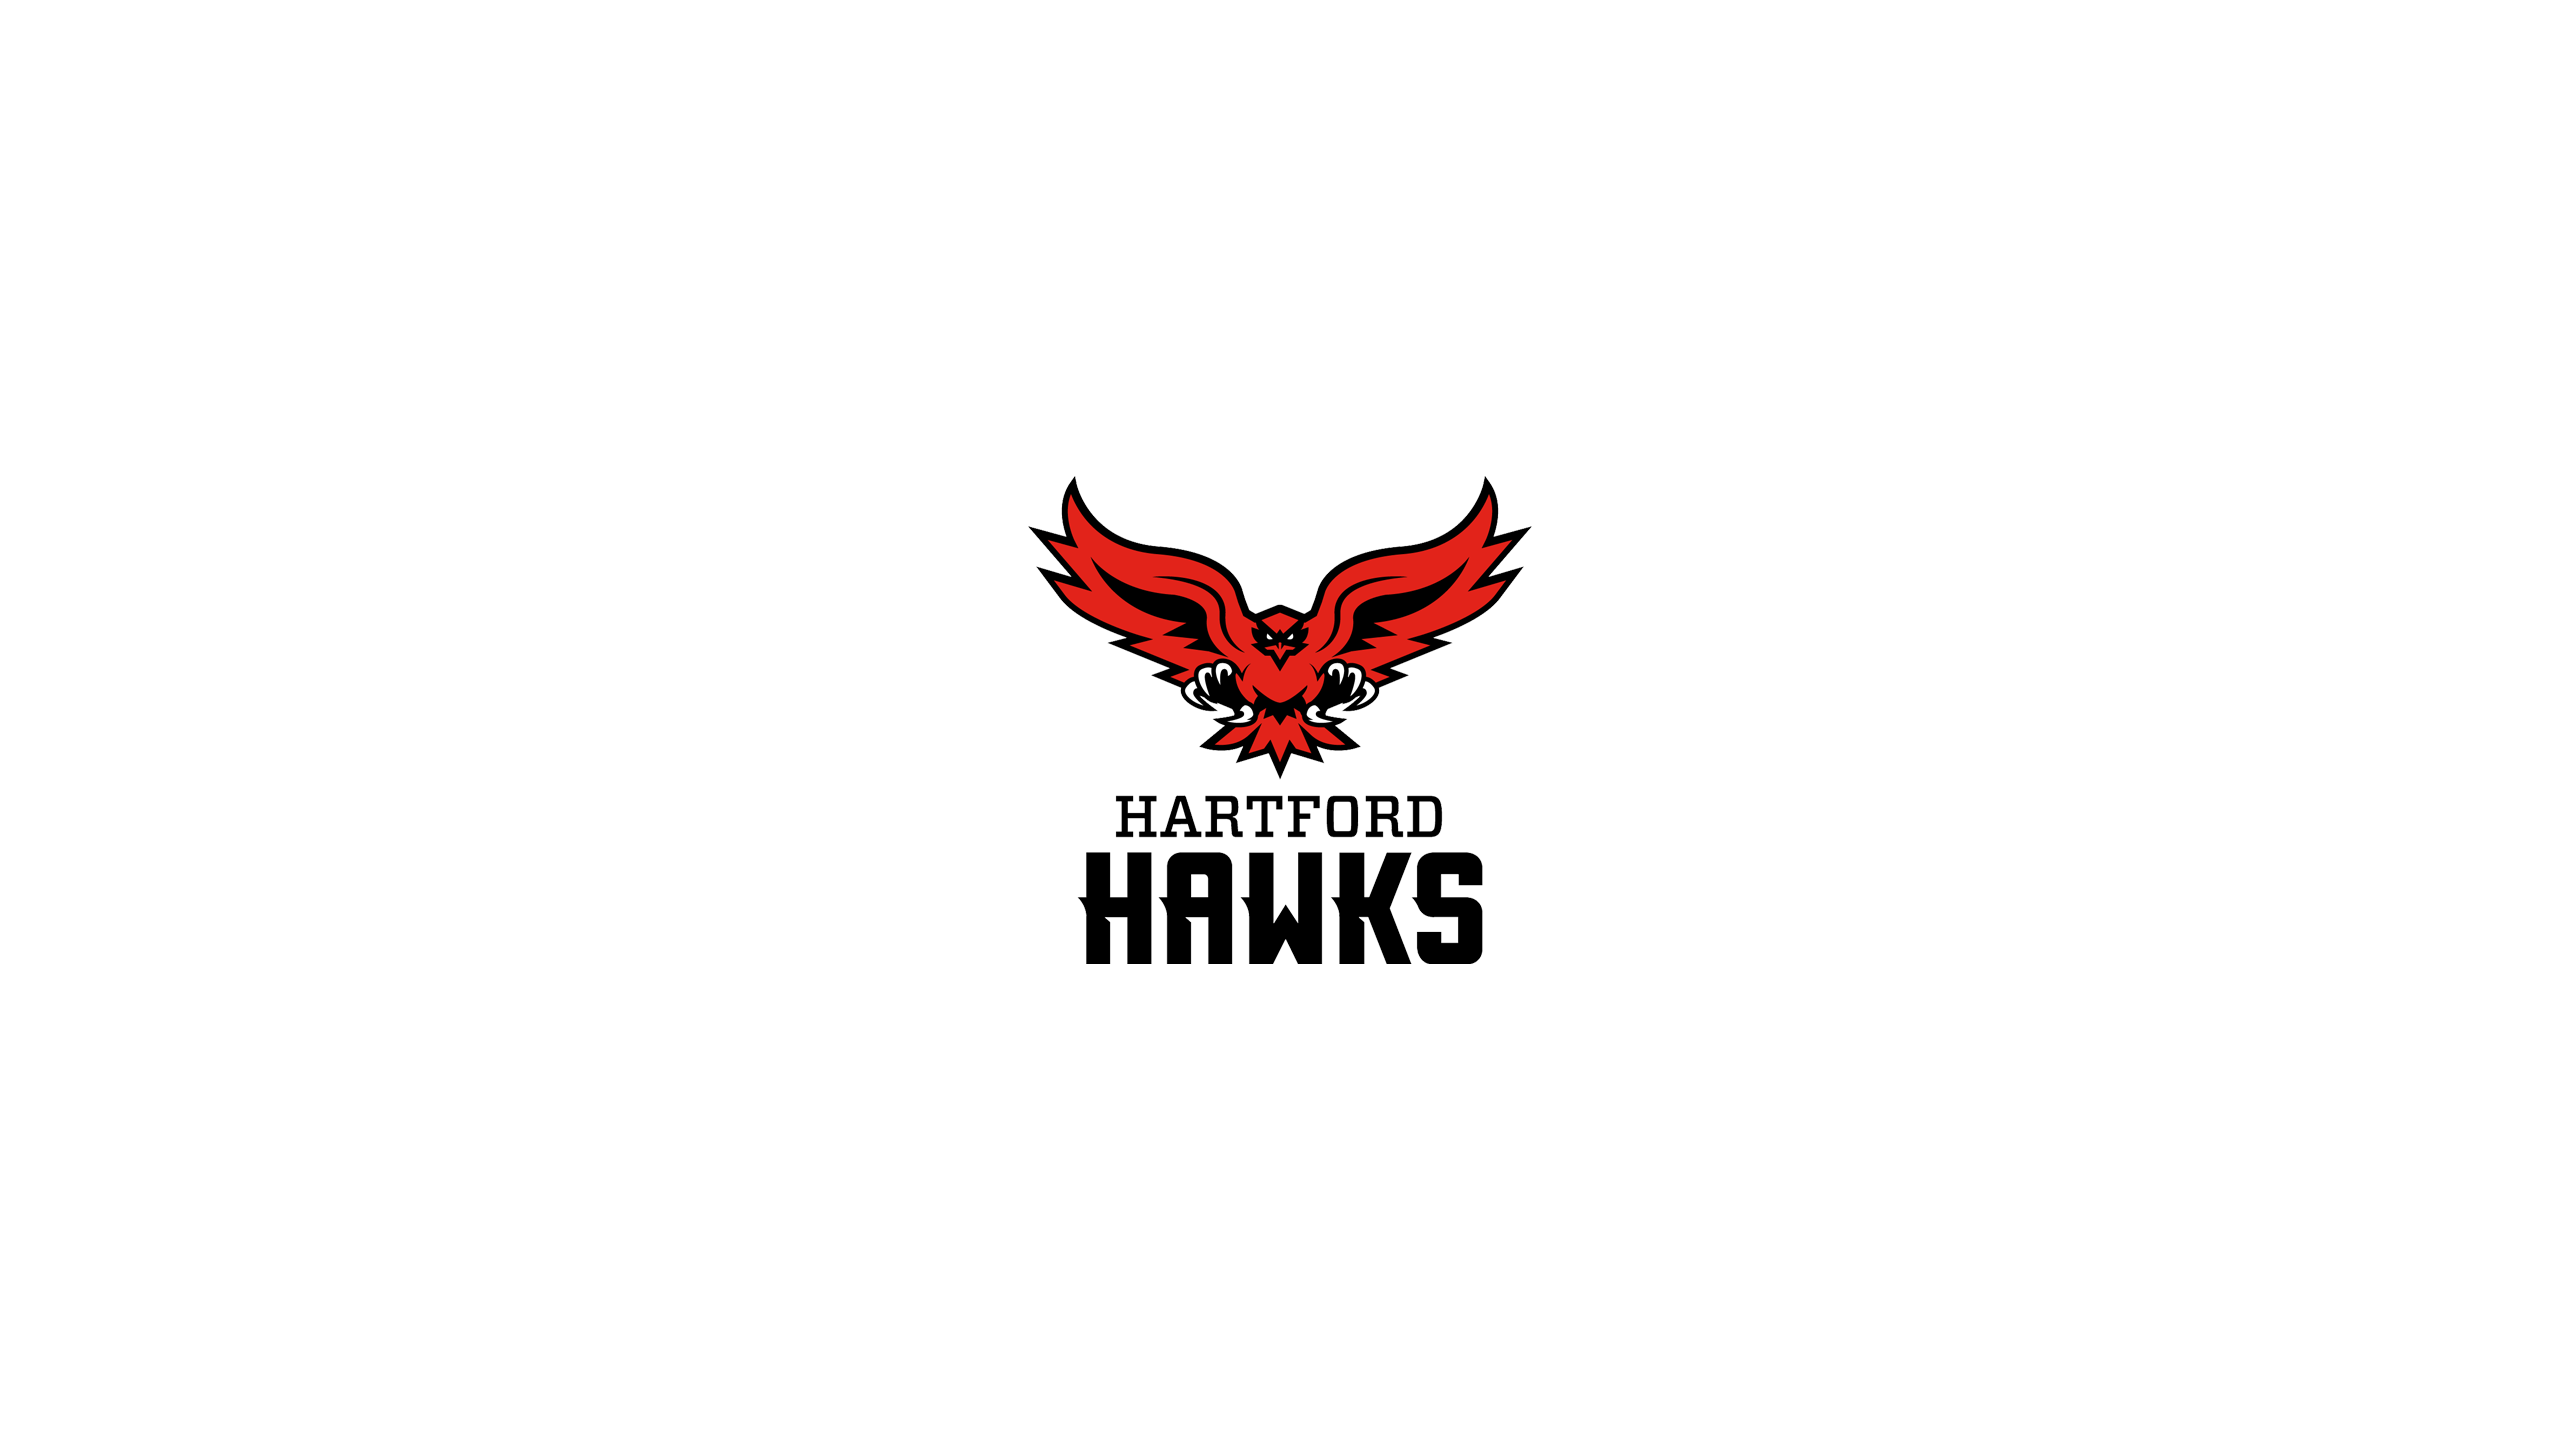 University of Hartford Hawks